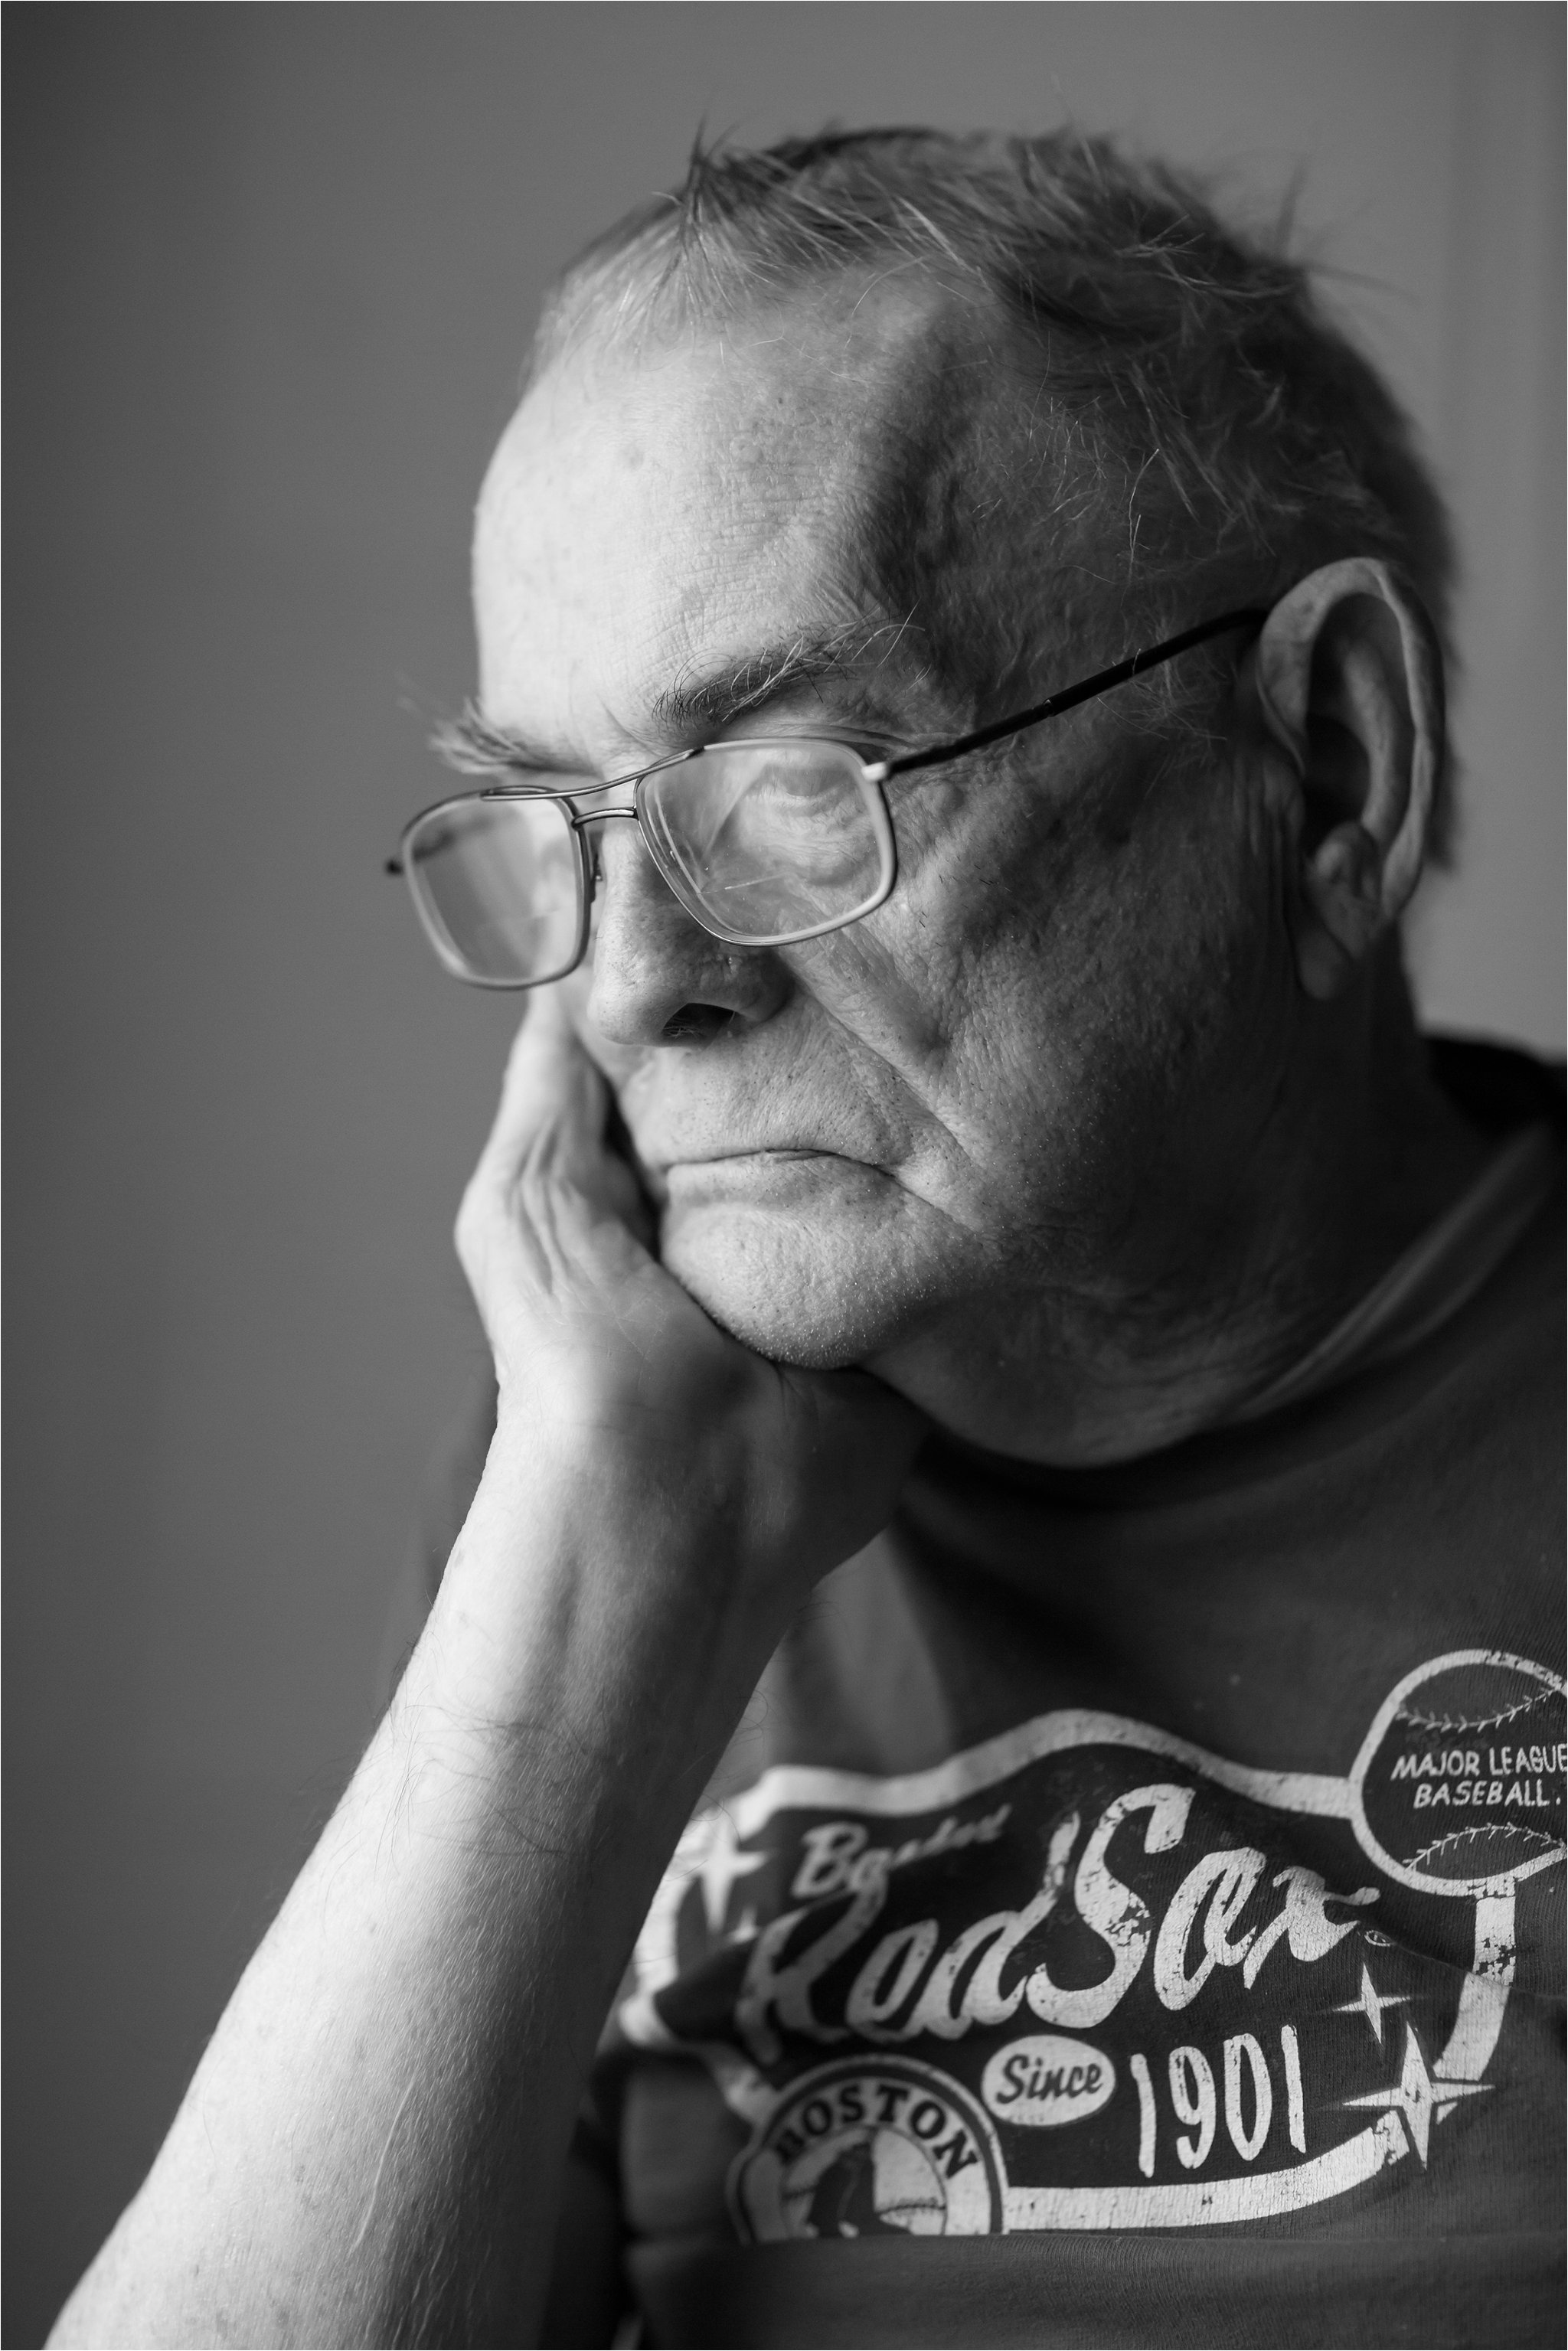 Black and White Portrait of Elderly Man Wearing Red Sox Shirt